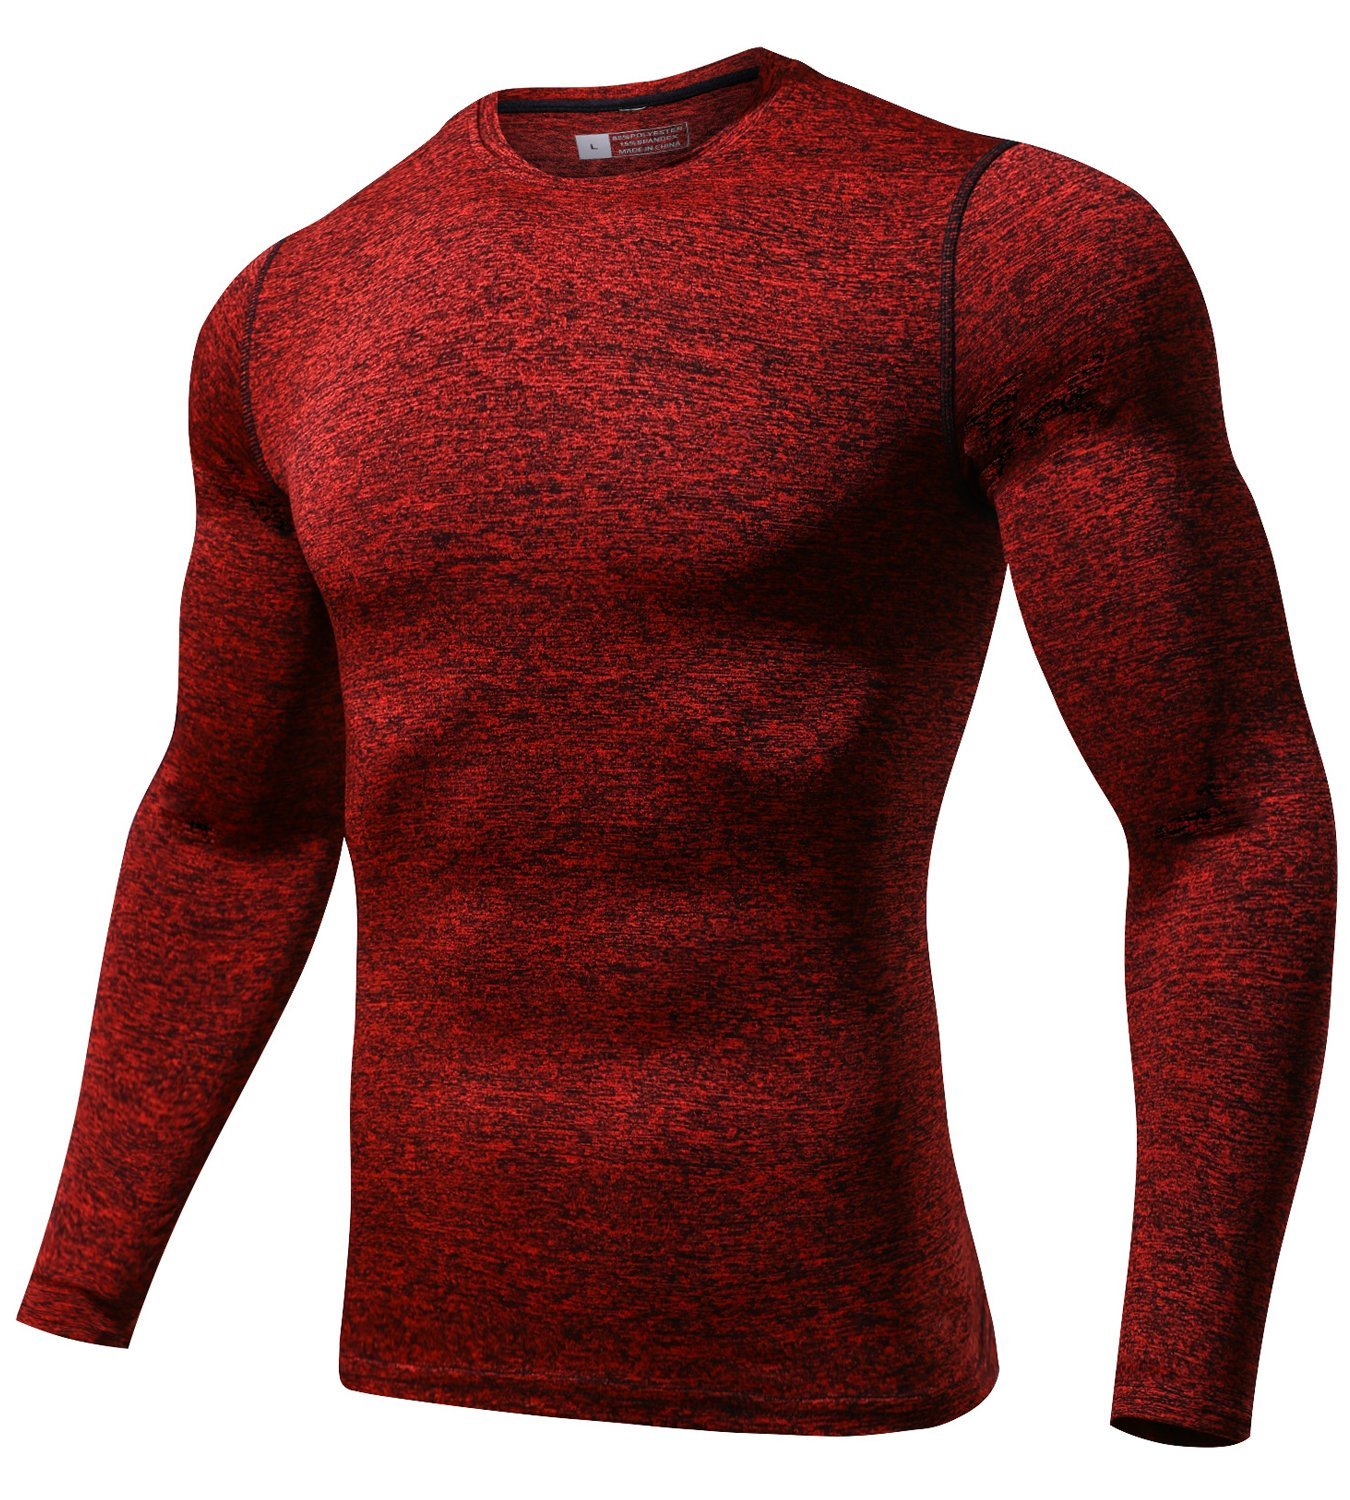 laventoメンズCool Dry圧縮ベースレイヤークルーネック長袖Running Shirts m3612 B07G2JB93L Large|1 Pack-3612H Red 1 Pack-3612H Red Large